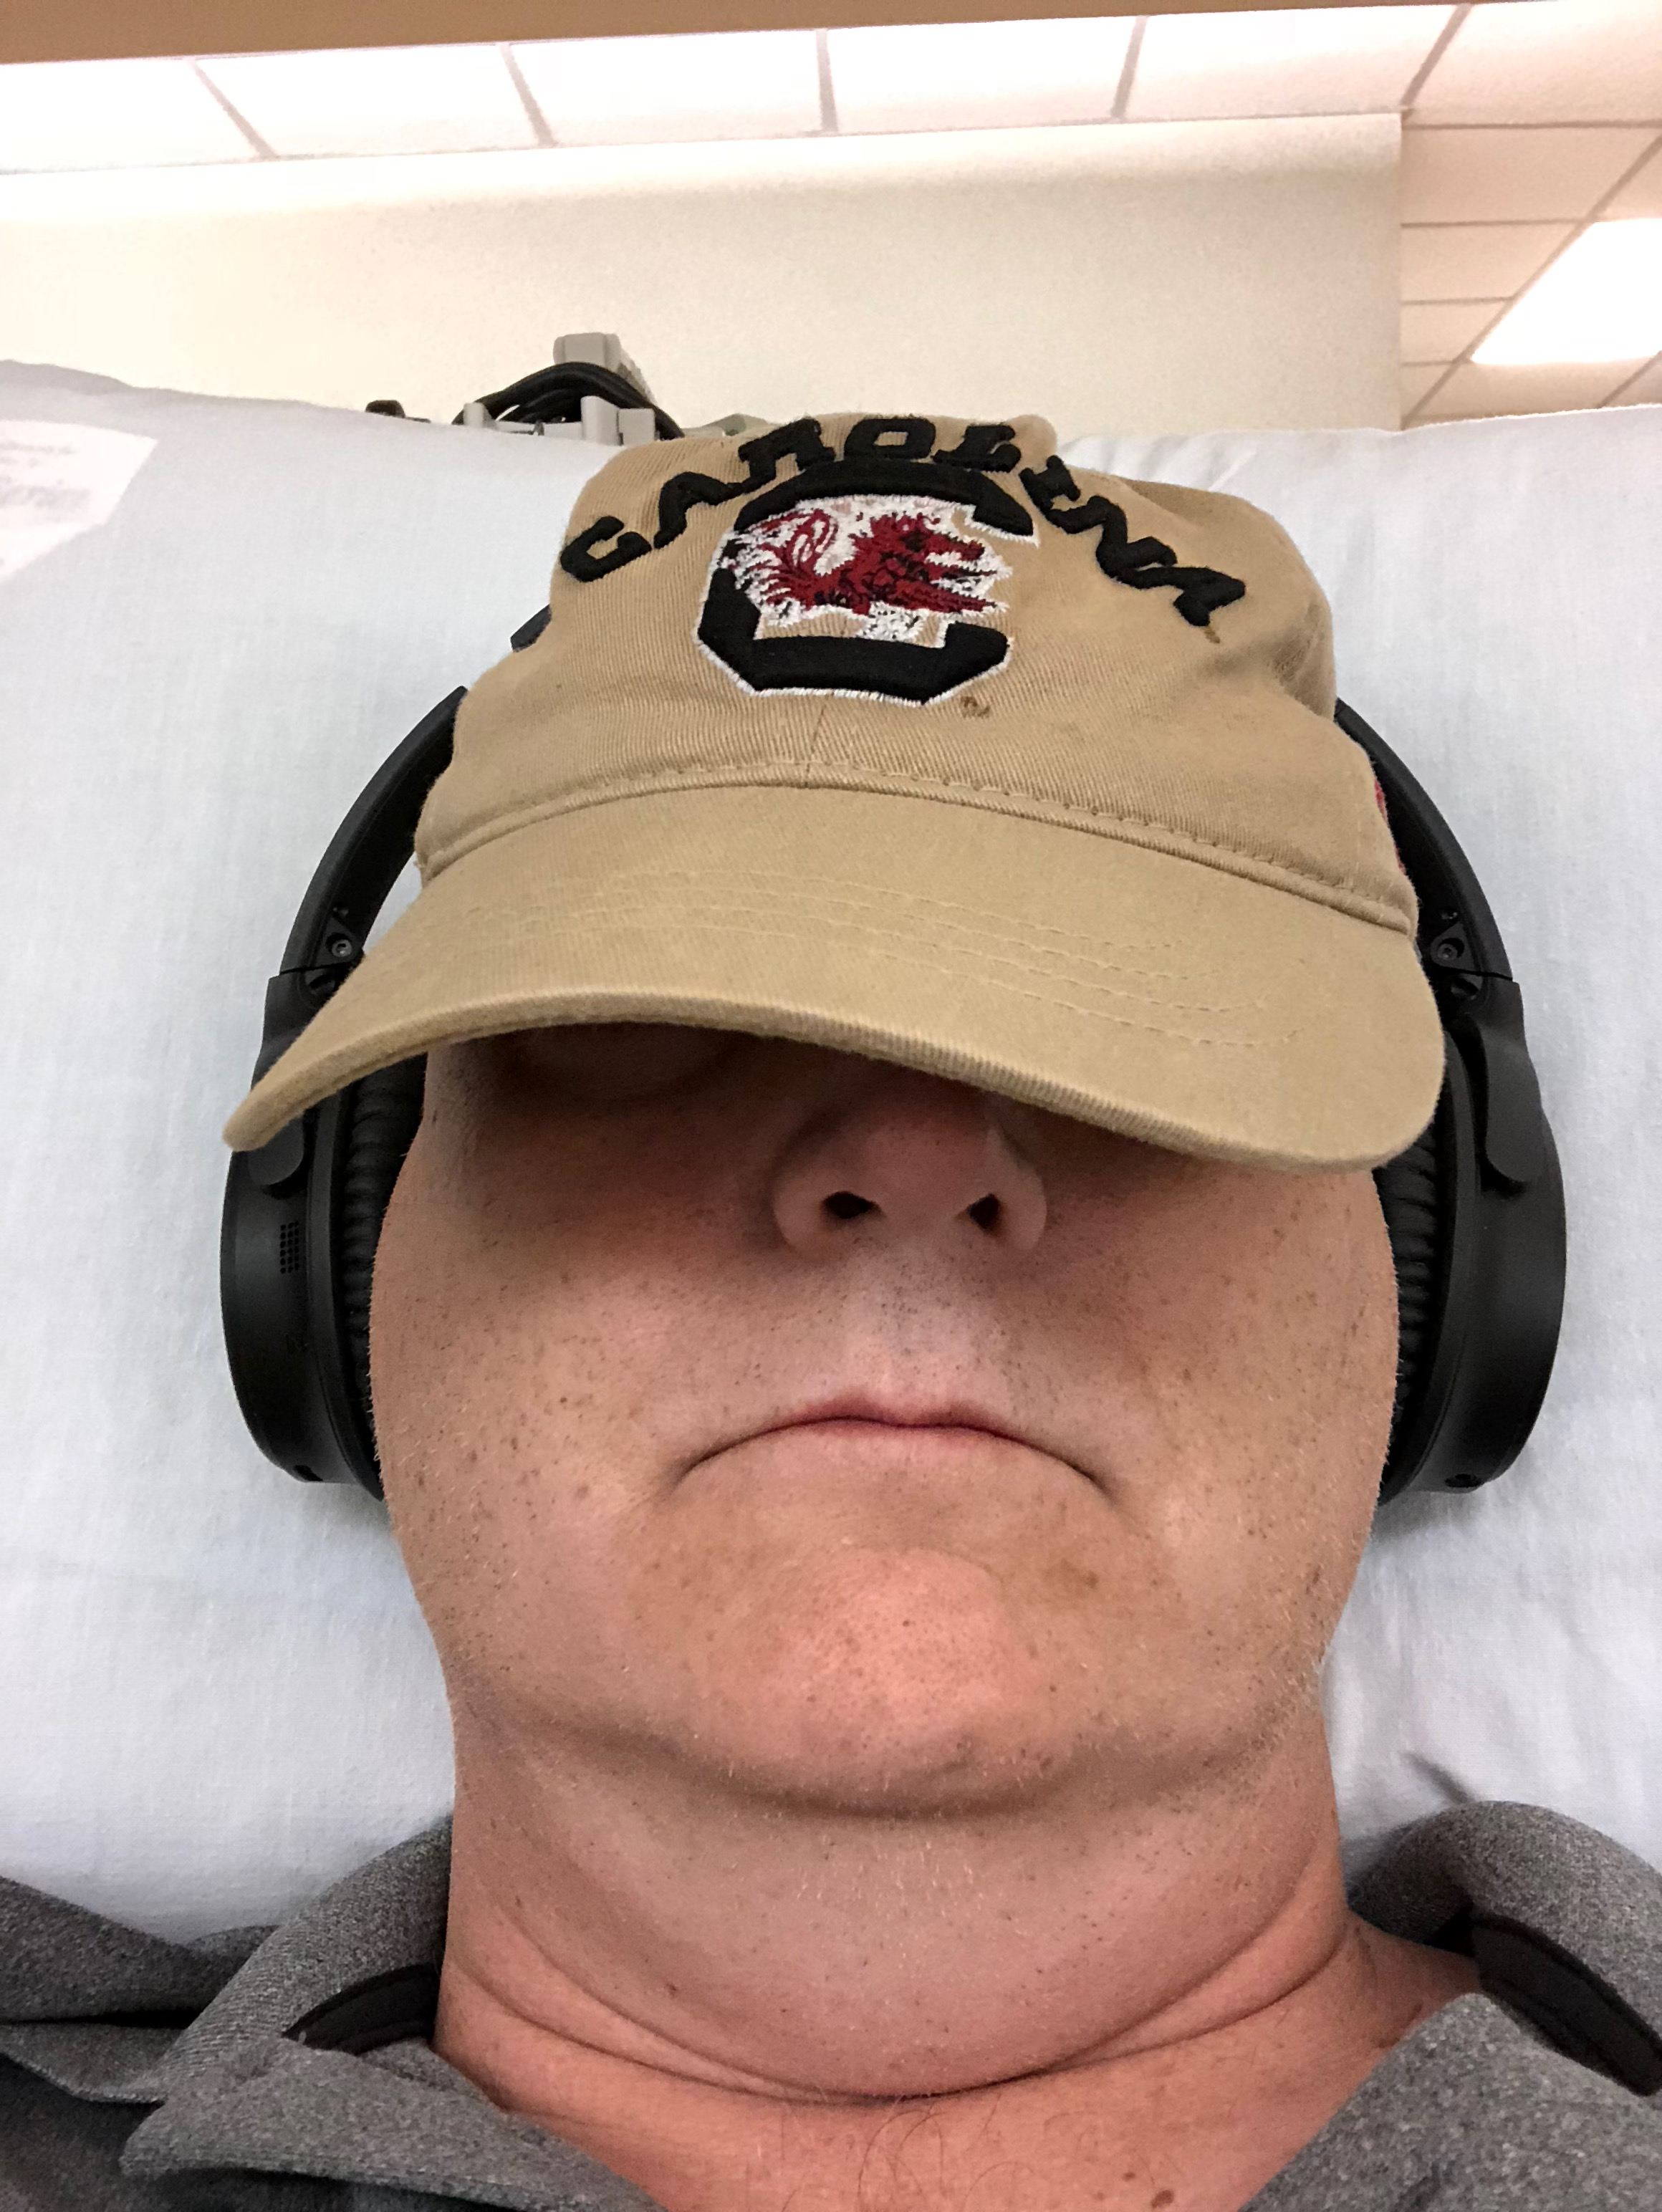 Me looking sexy in chemo.